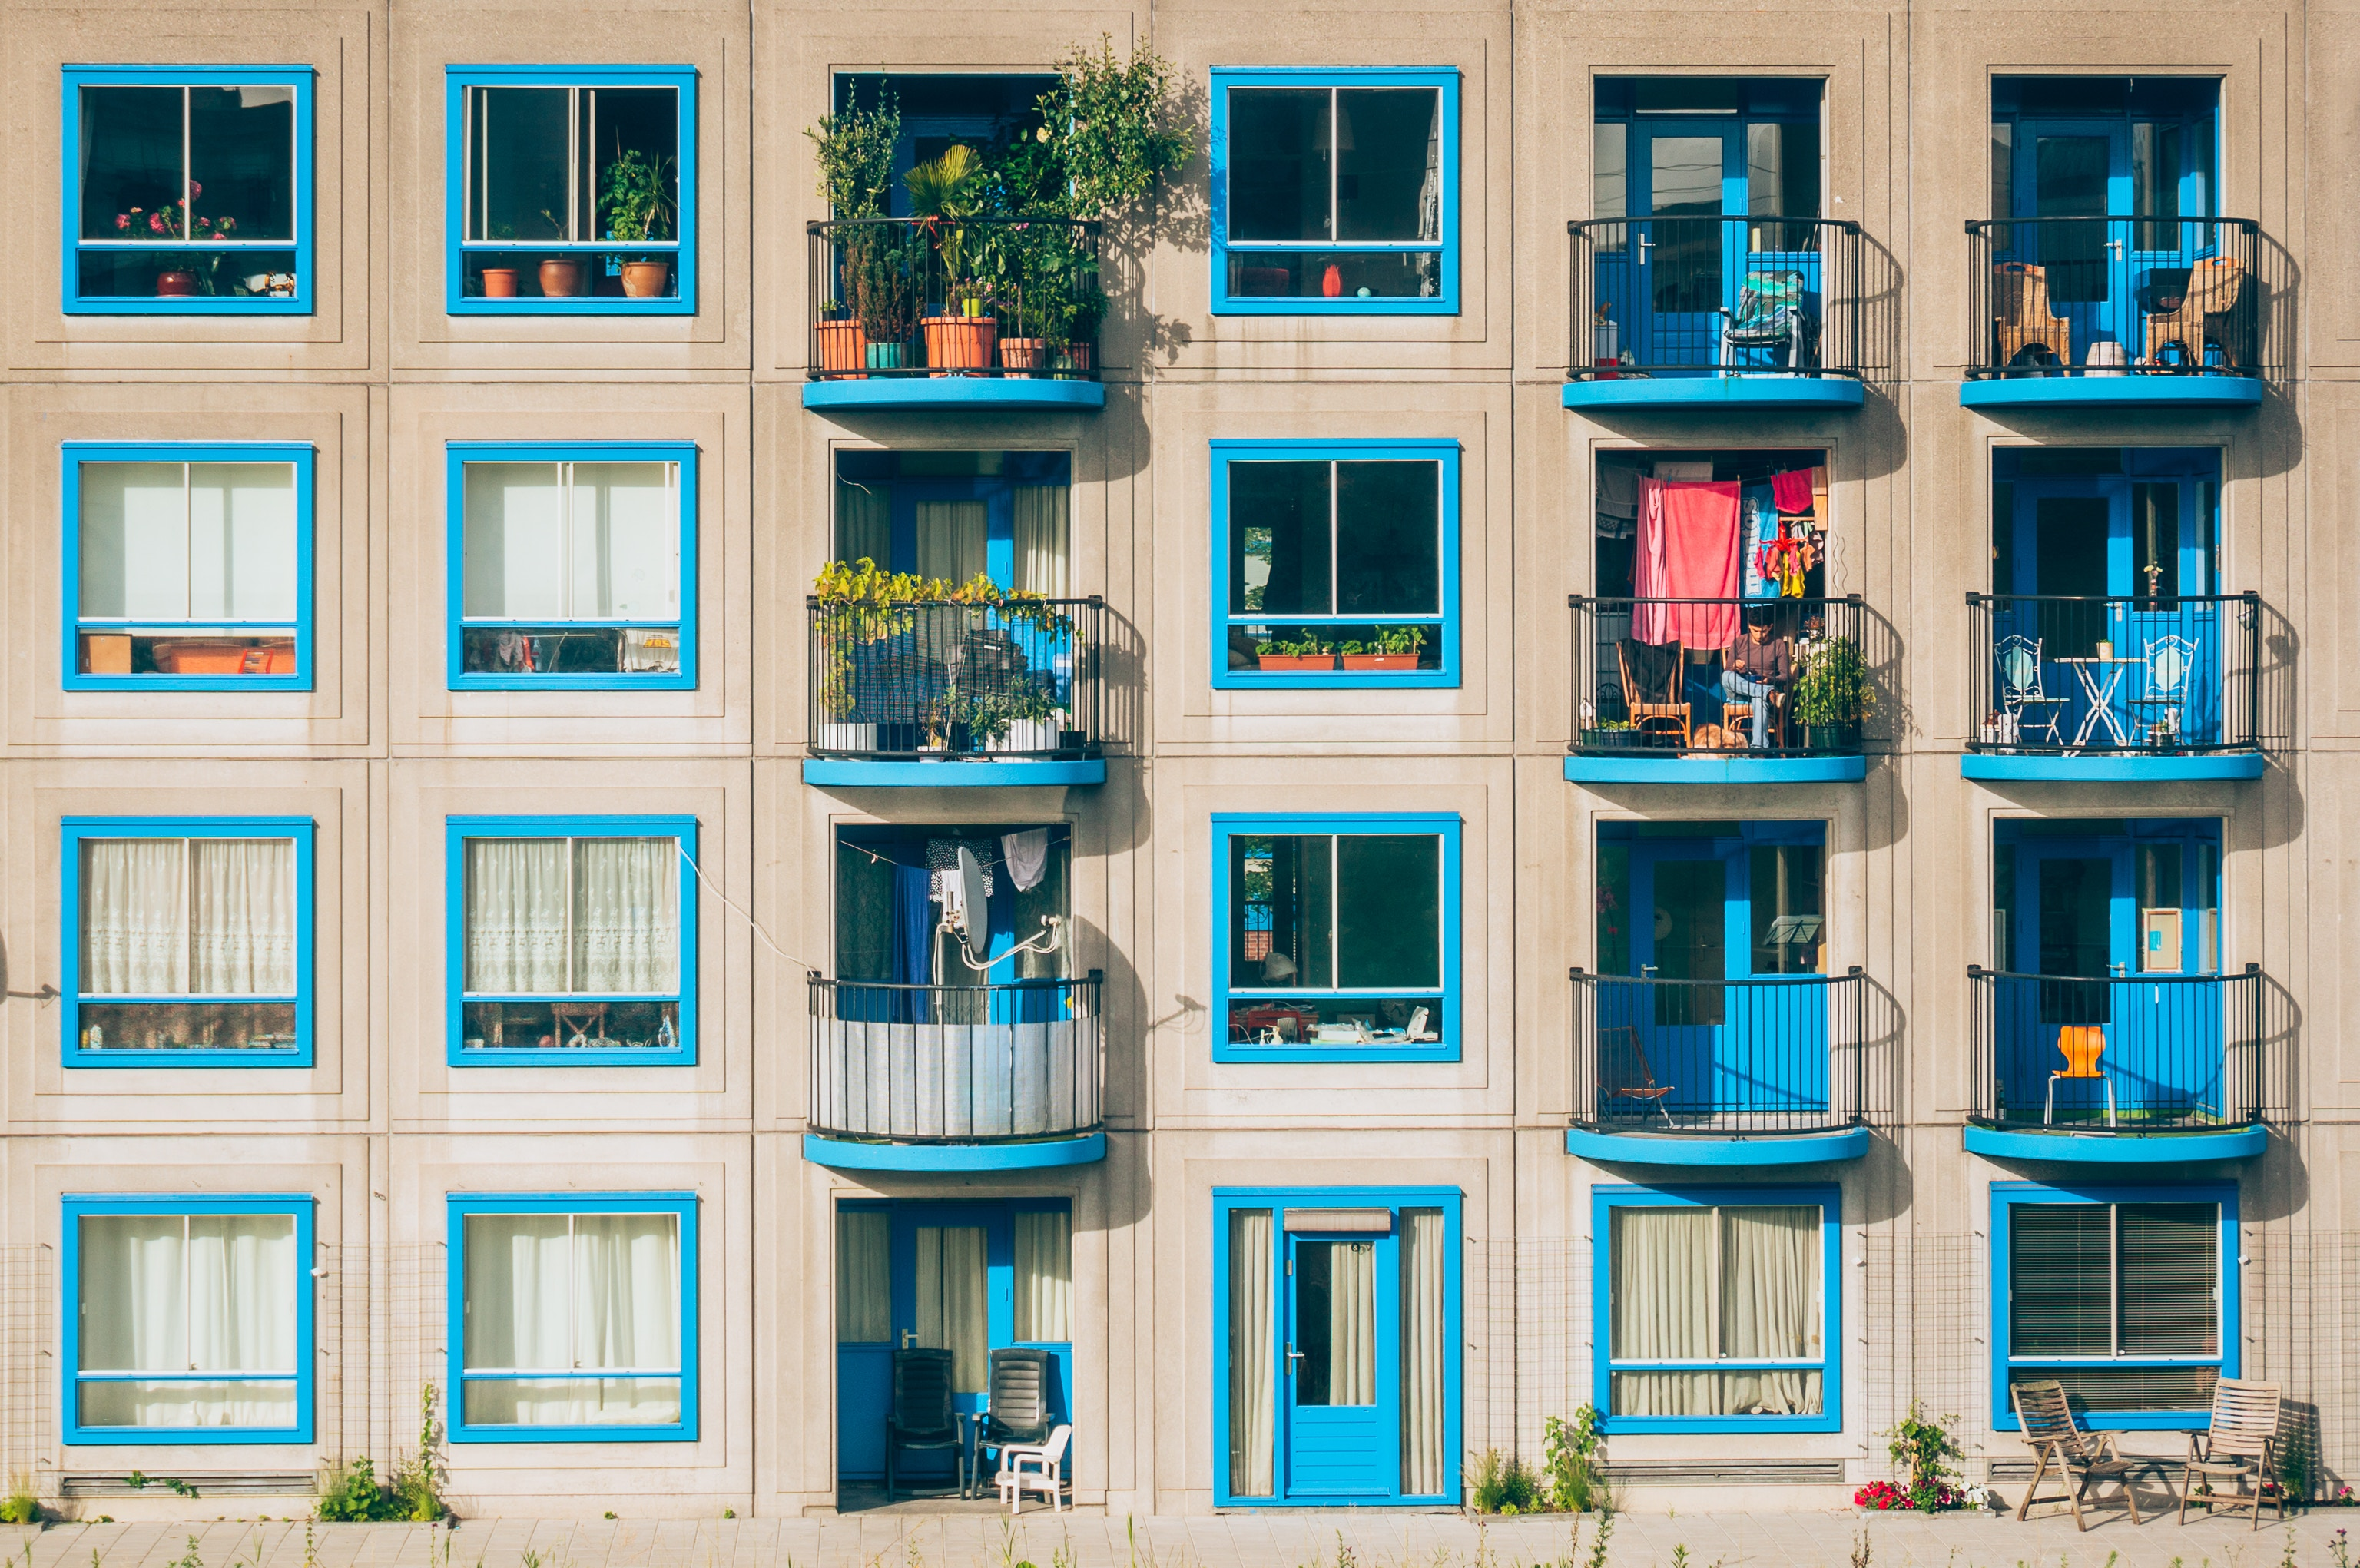 apartments_blue-windows_by-jan-jakub-nanista.jpg